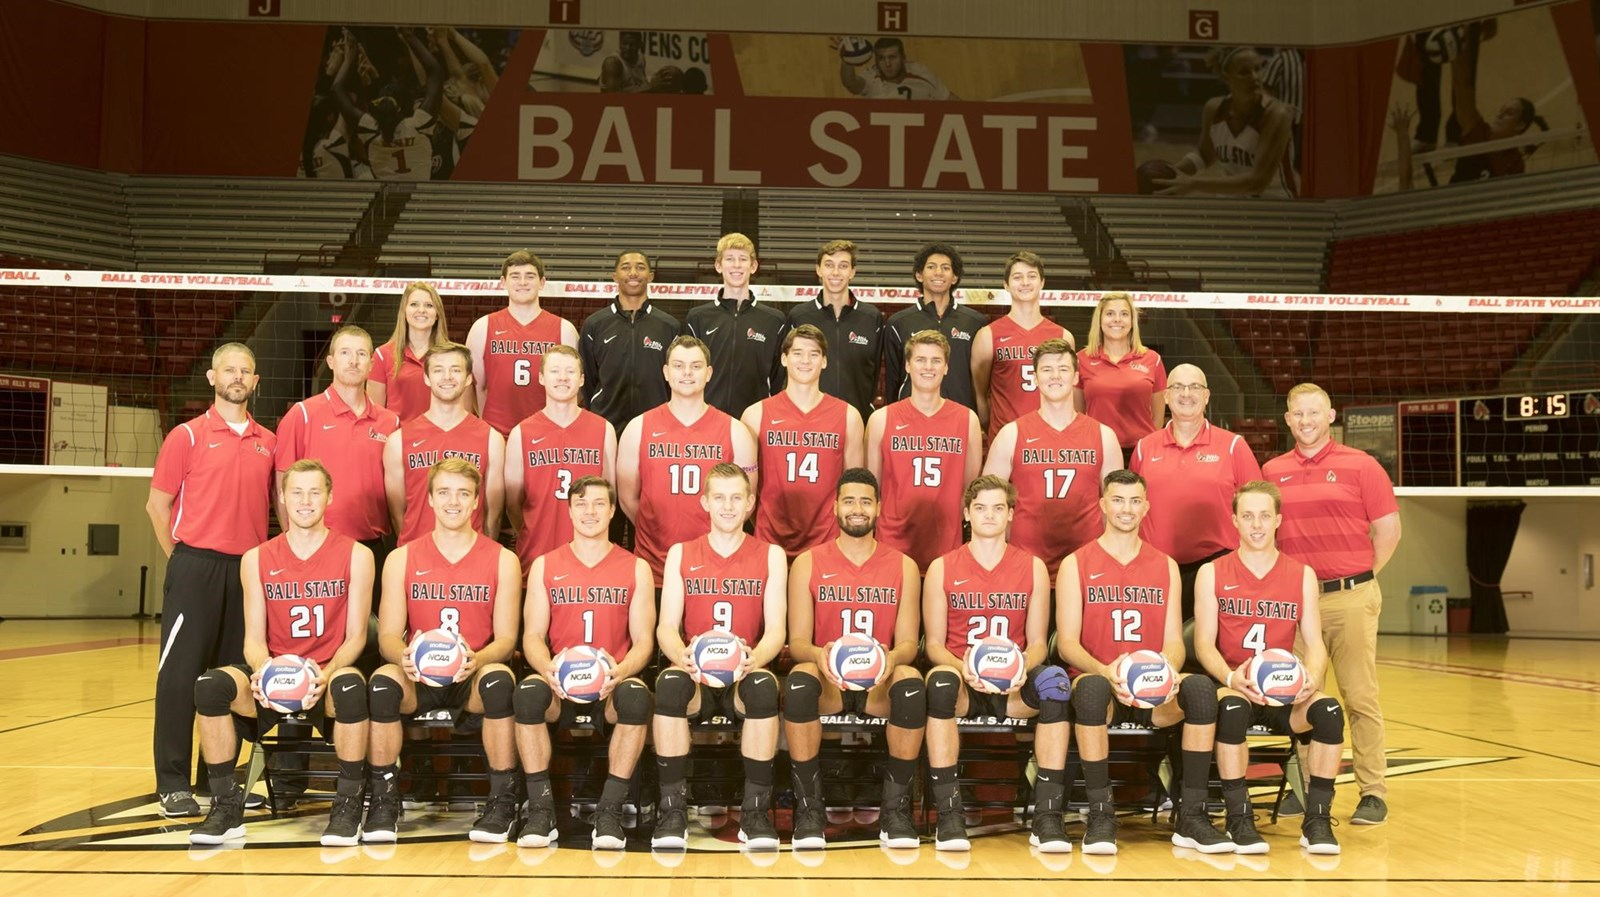 Ball State Campus Map, Team Photo, Ball State Campus Map